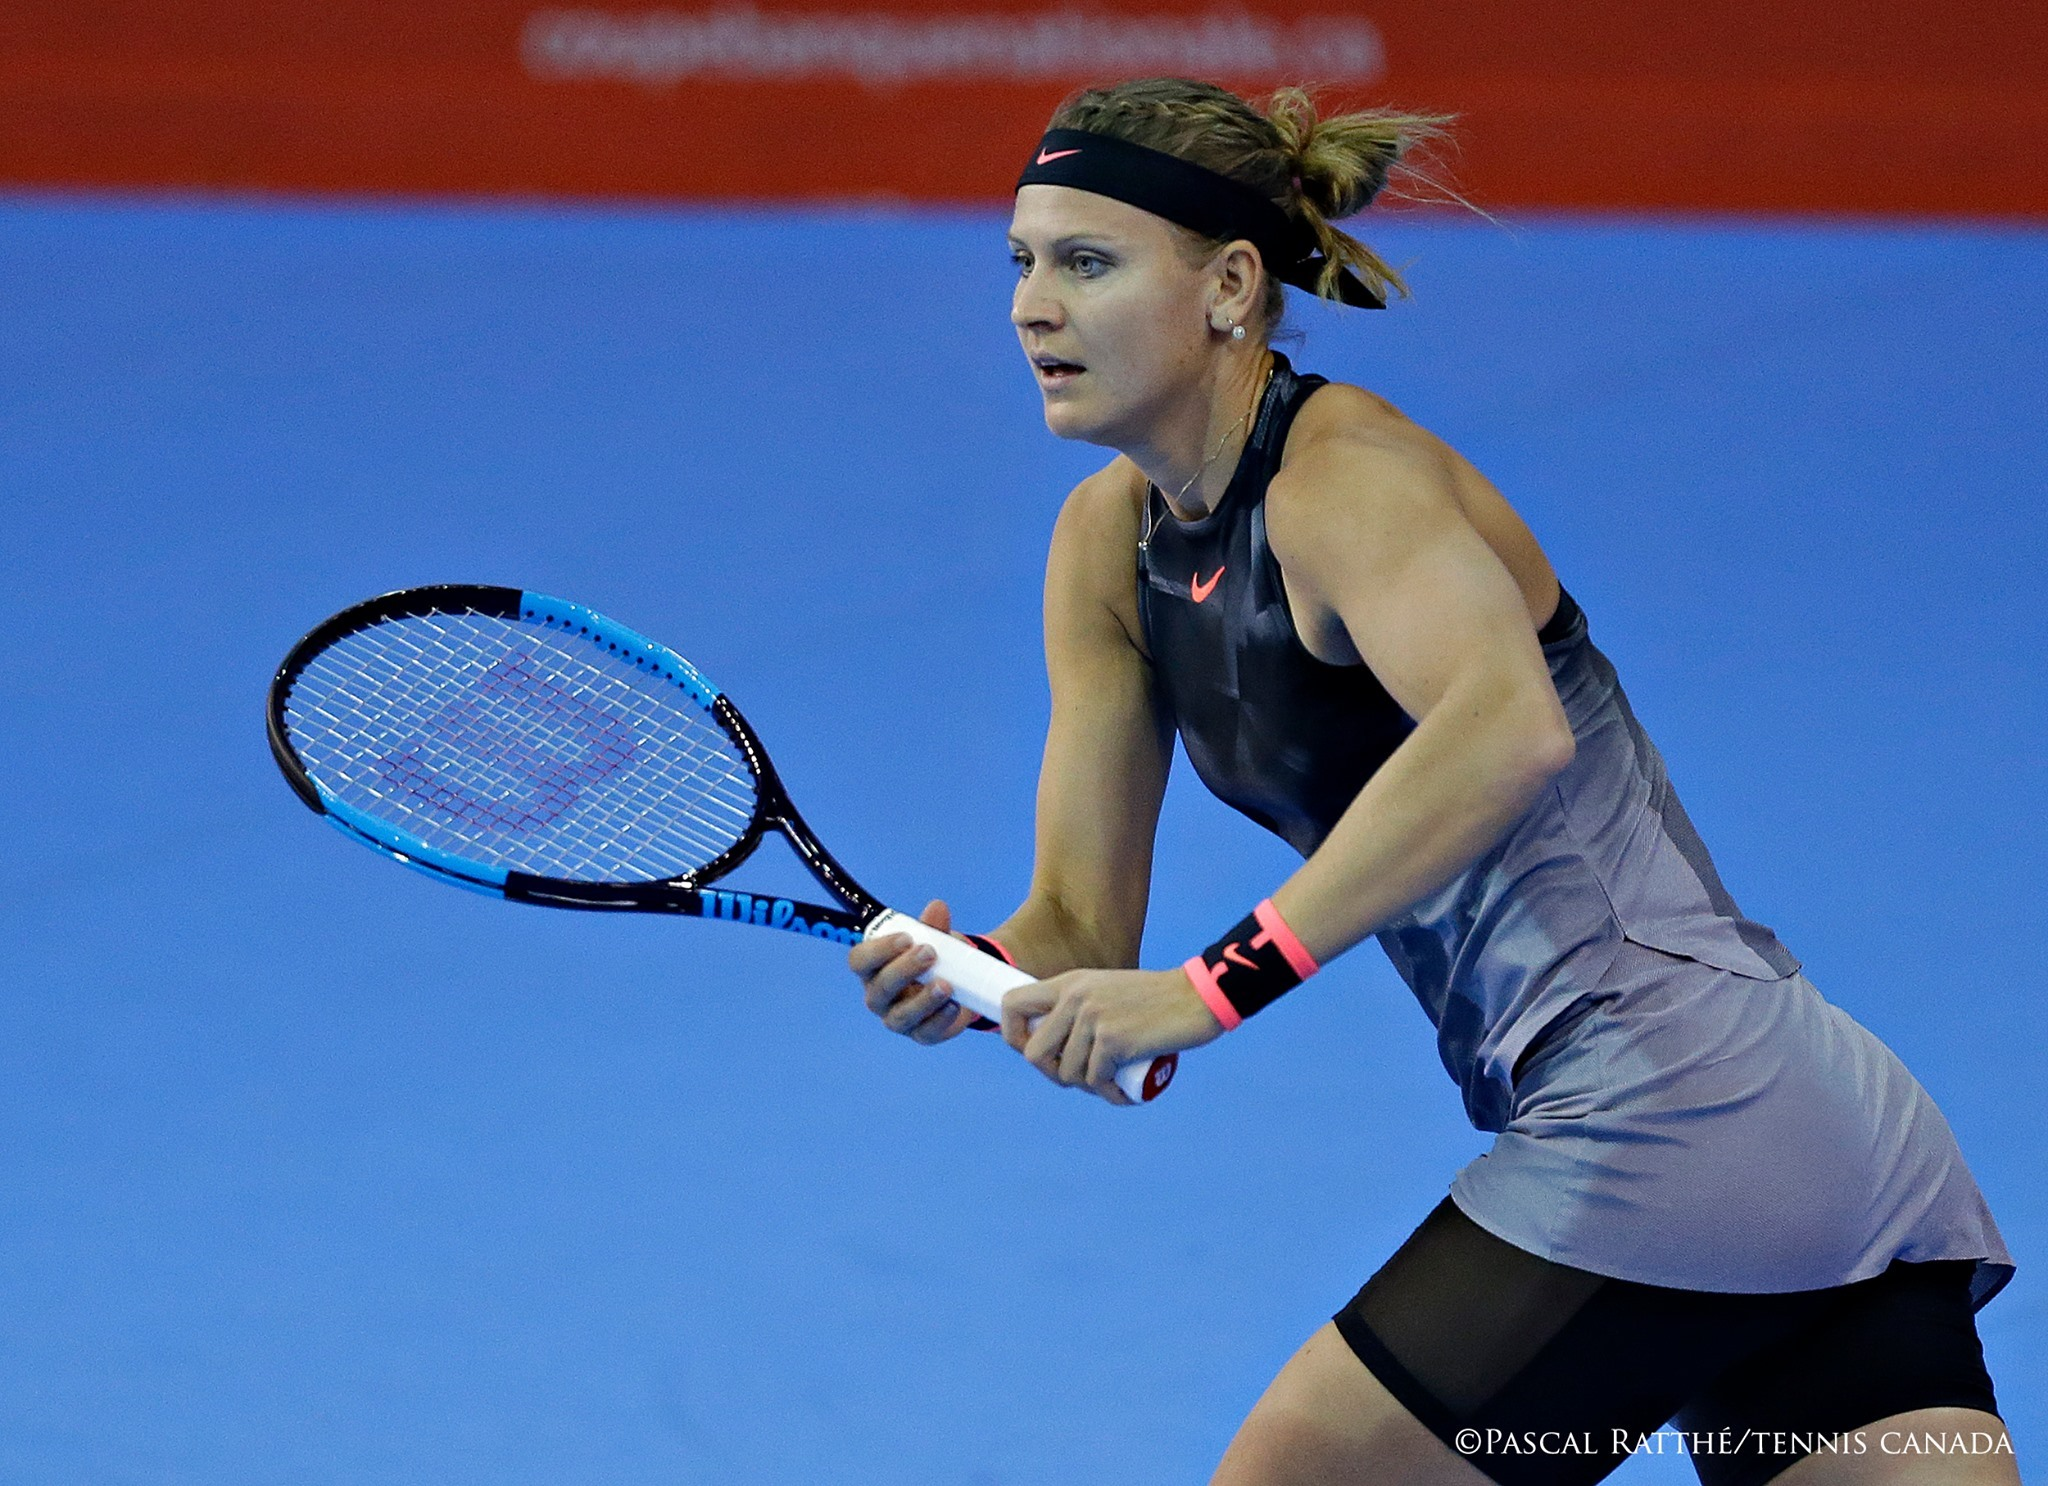 Lucie Safarova loses to Babos in Quebec semifinals